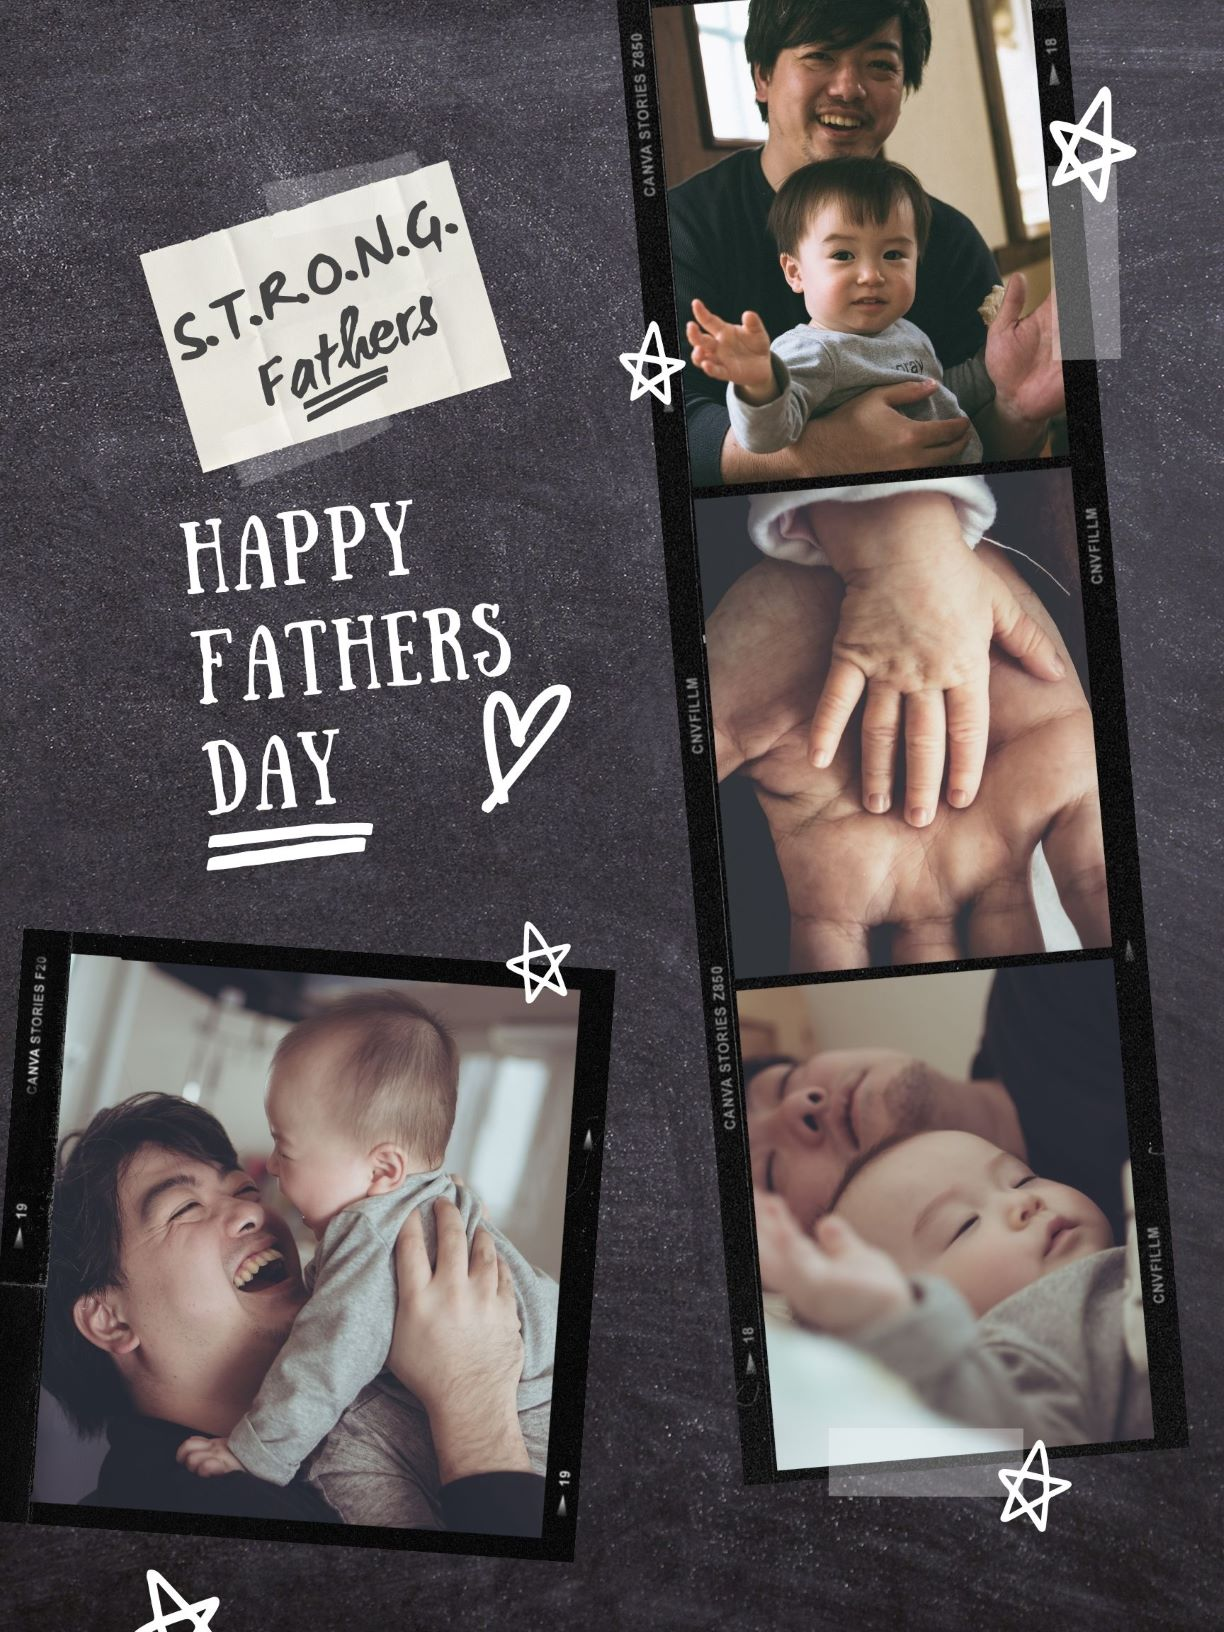 S.T.R.O.N.G Fathers